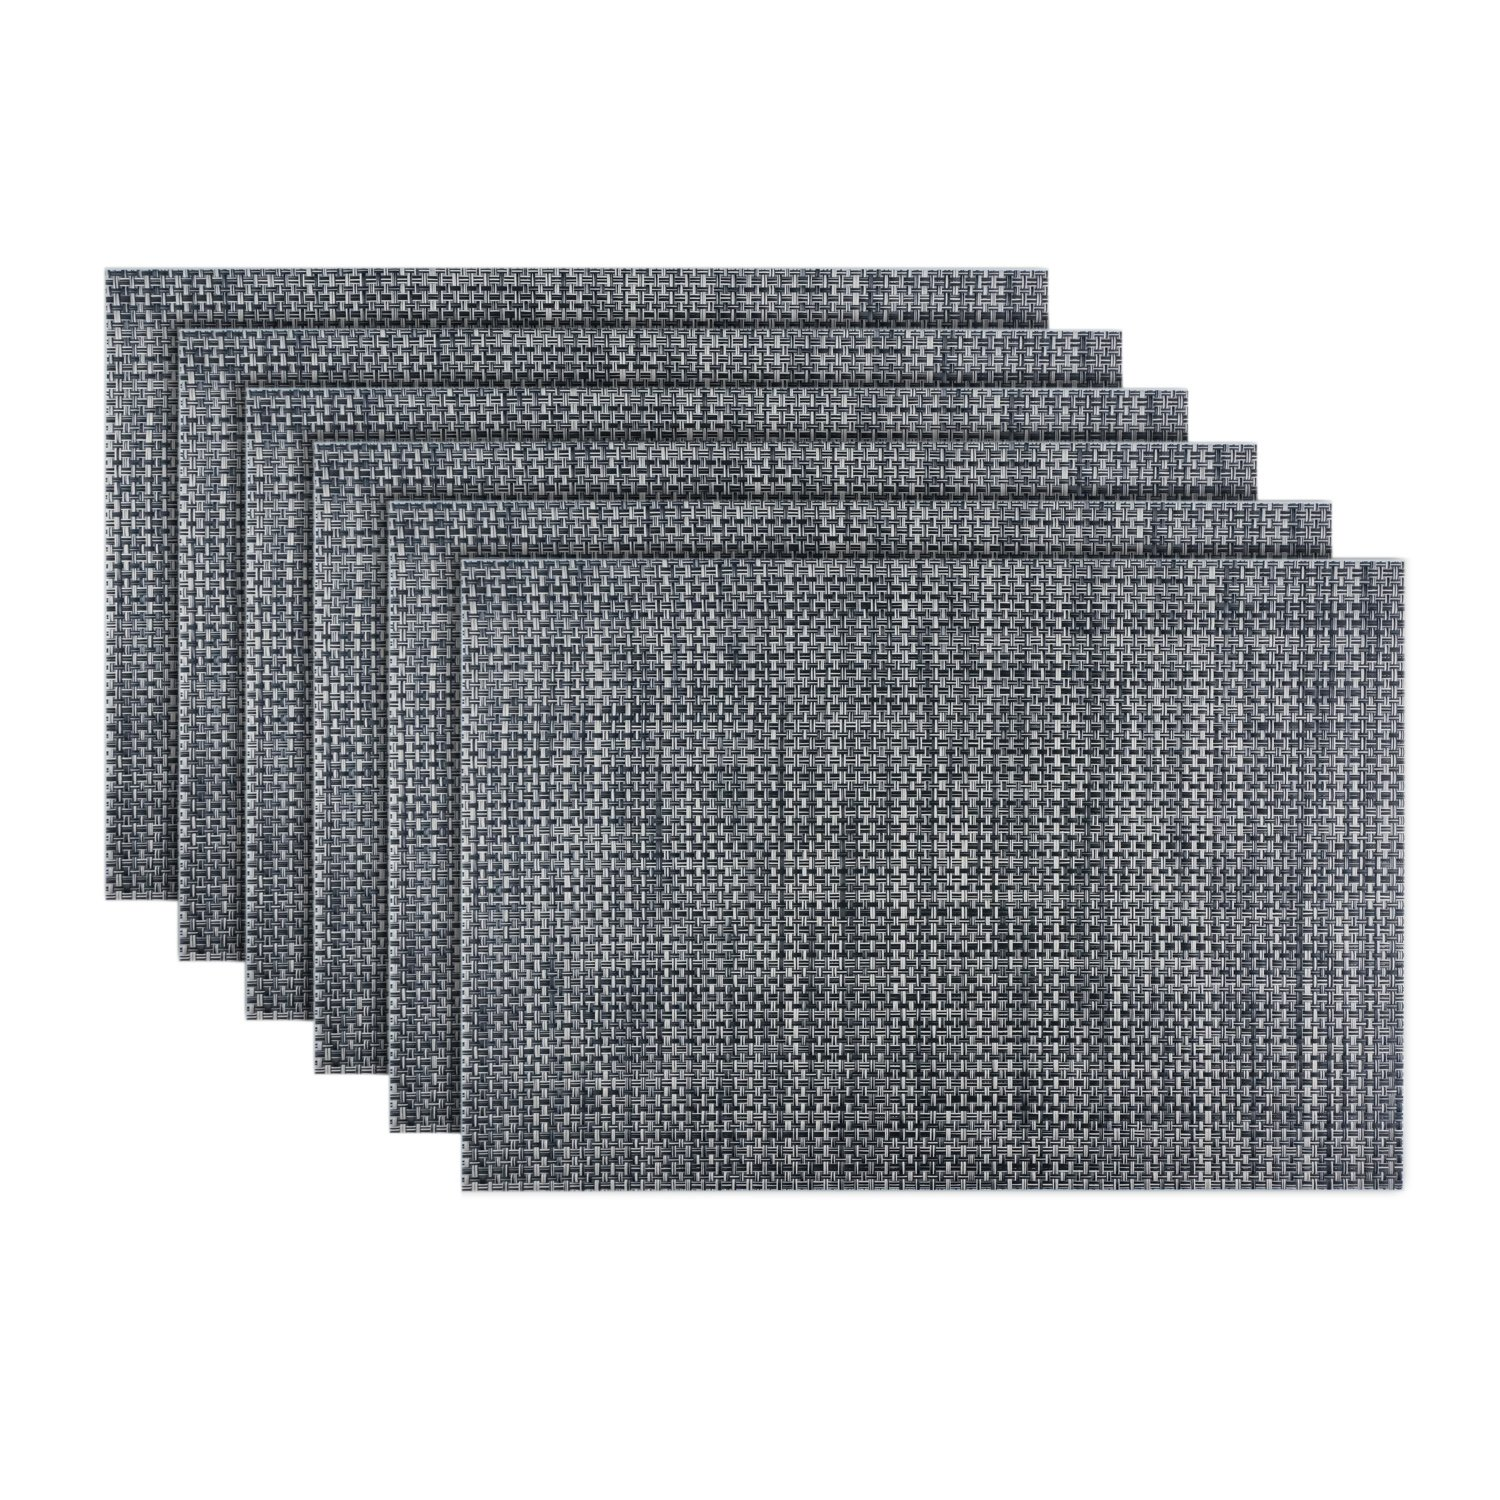 Emiica Woven Vinyl Placemats for Dining Table, Heat Resistant and Non Slip, Washable and Easy to Clean Mats Set of 6 (Black and White)